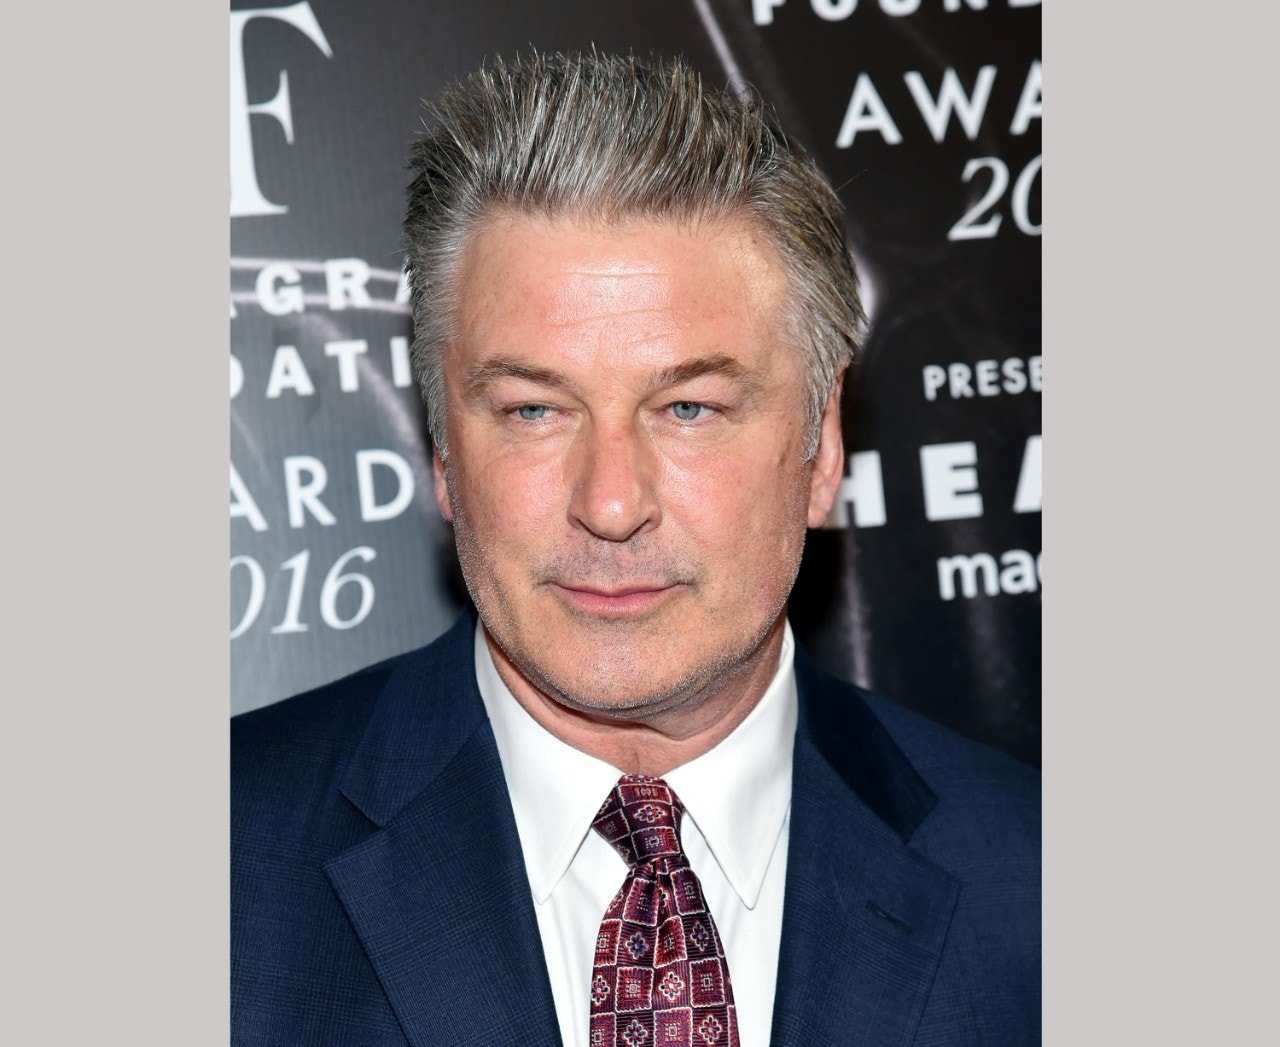 Alec Baldwin to play Donald Trump on 'SNL' | Fox News